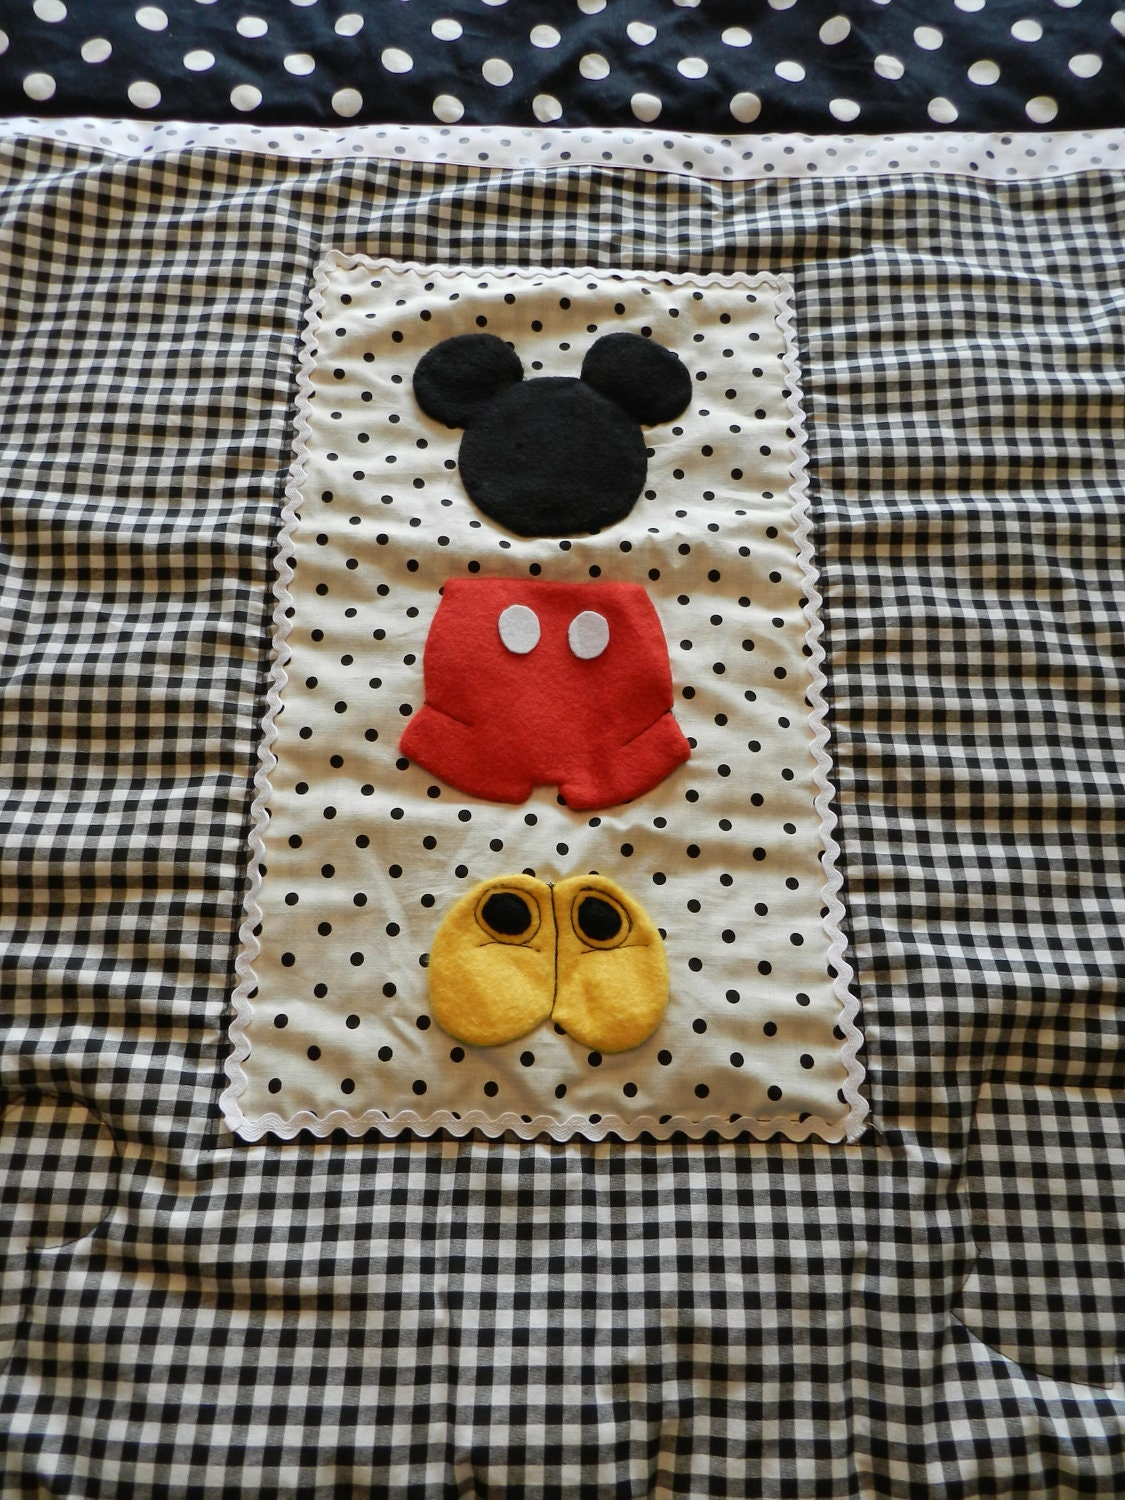 Mickey Mouse Stroller Pack N Play Quilt By